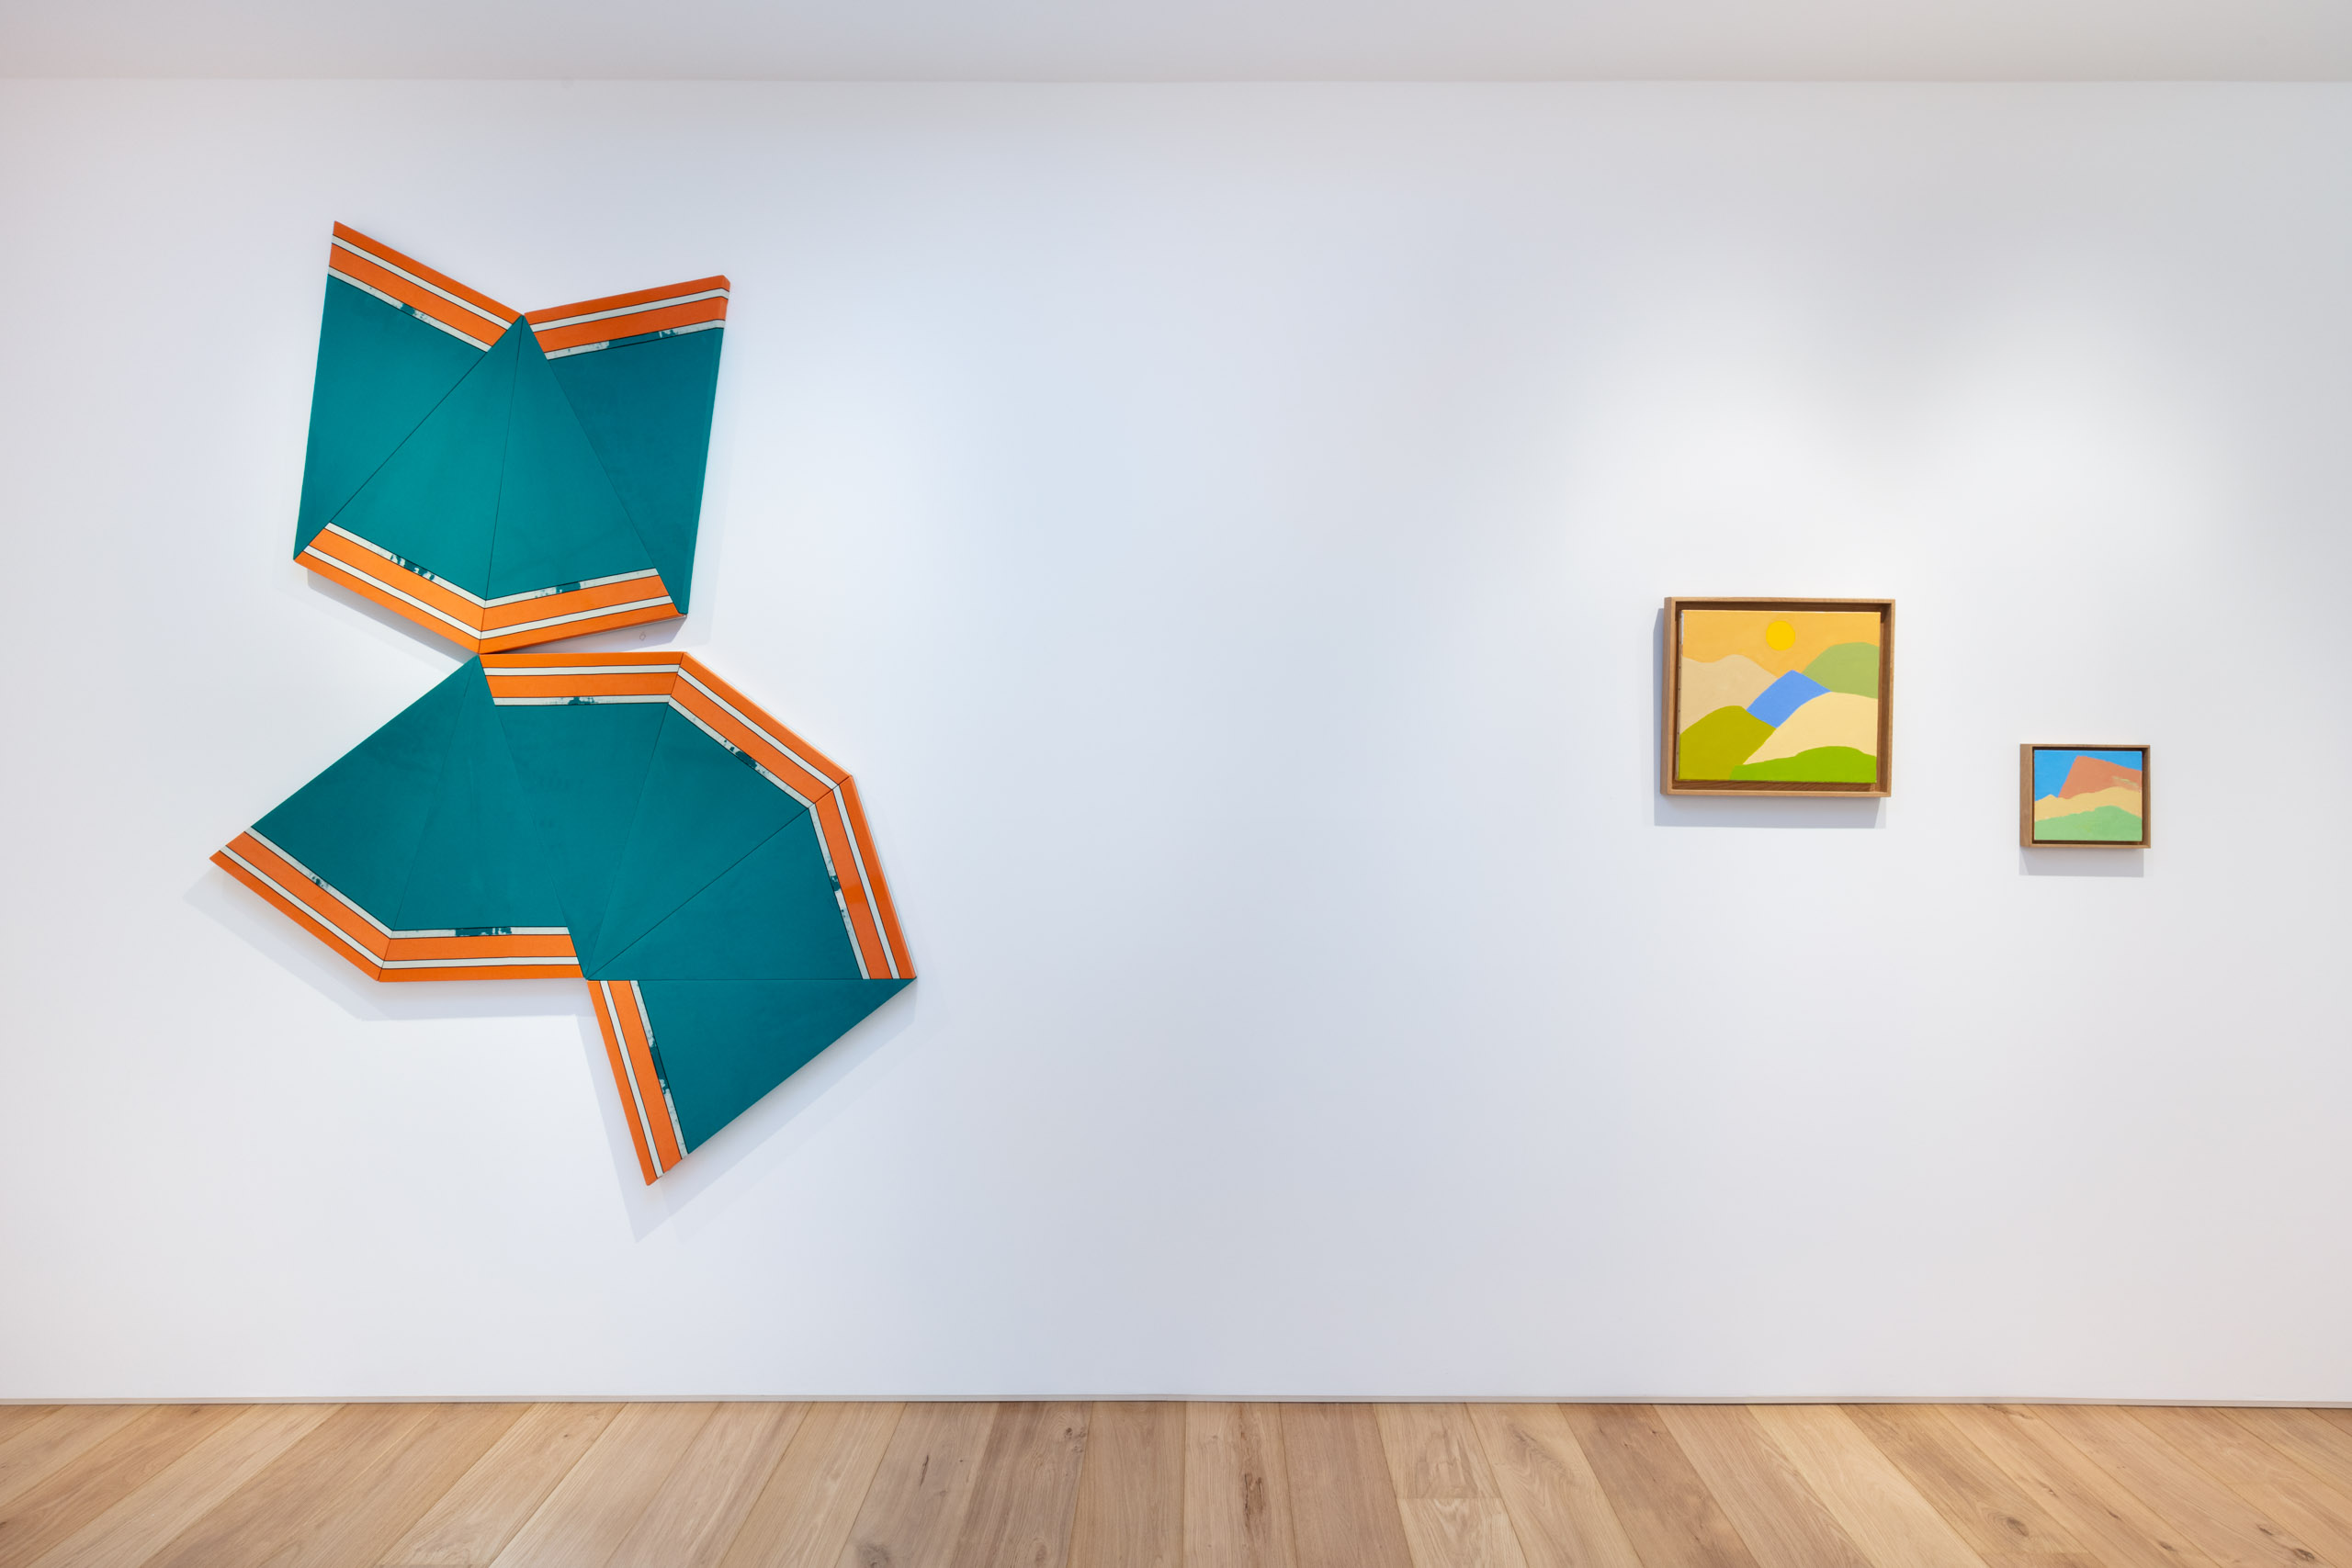 Installation view, To Situations New, Lamb, London, 2021, Courtesy of the gallery